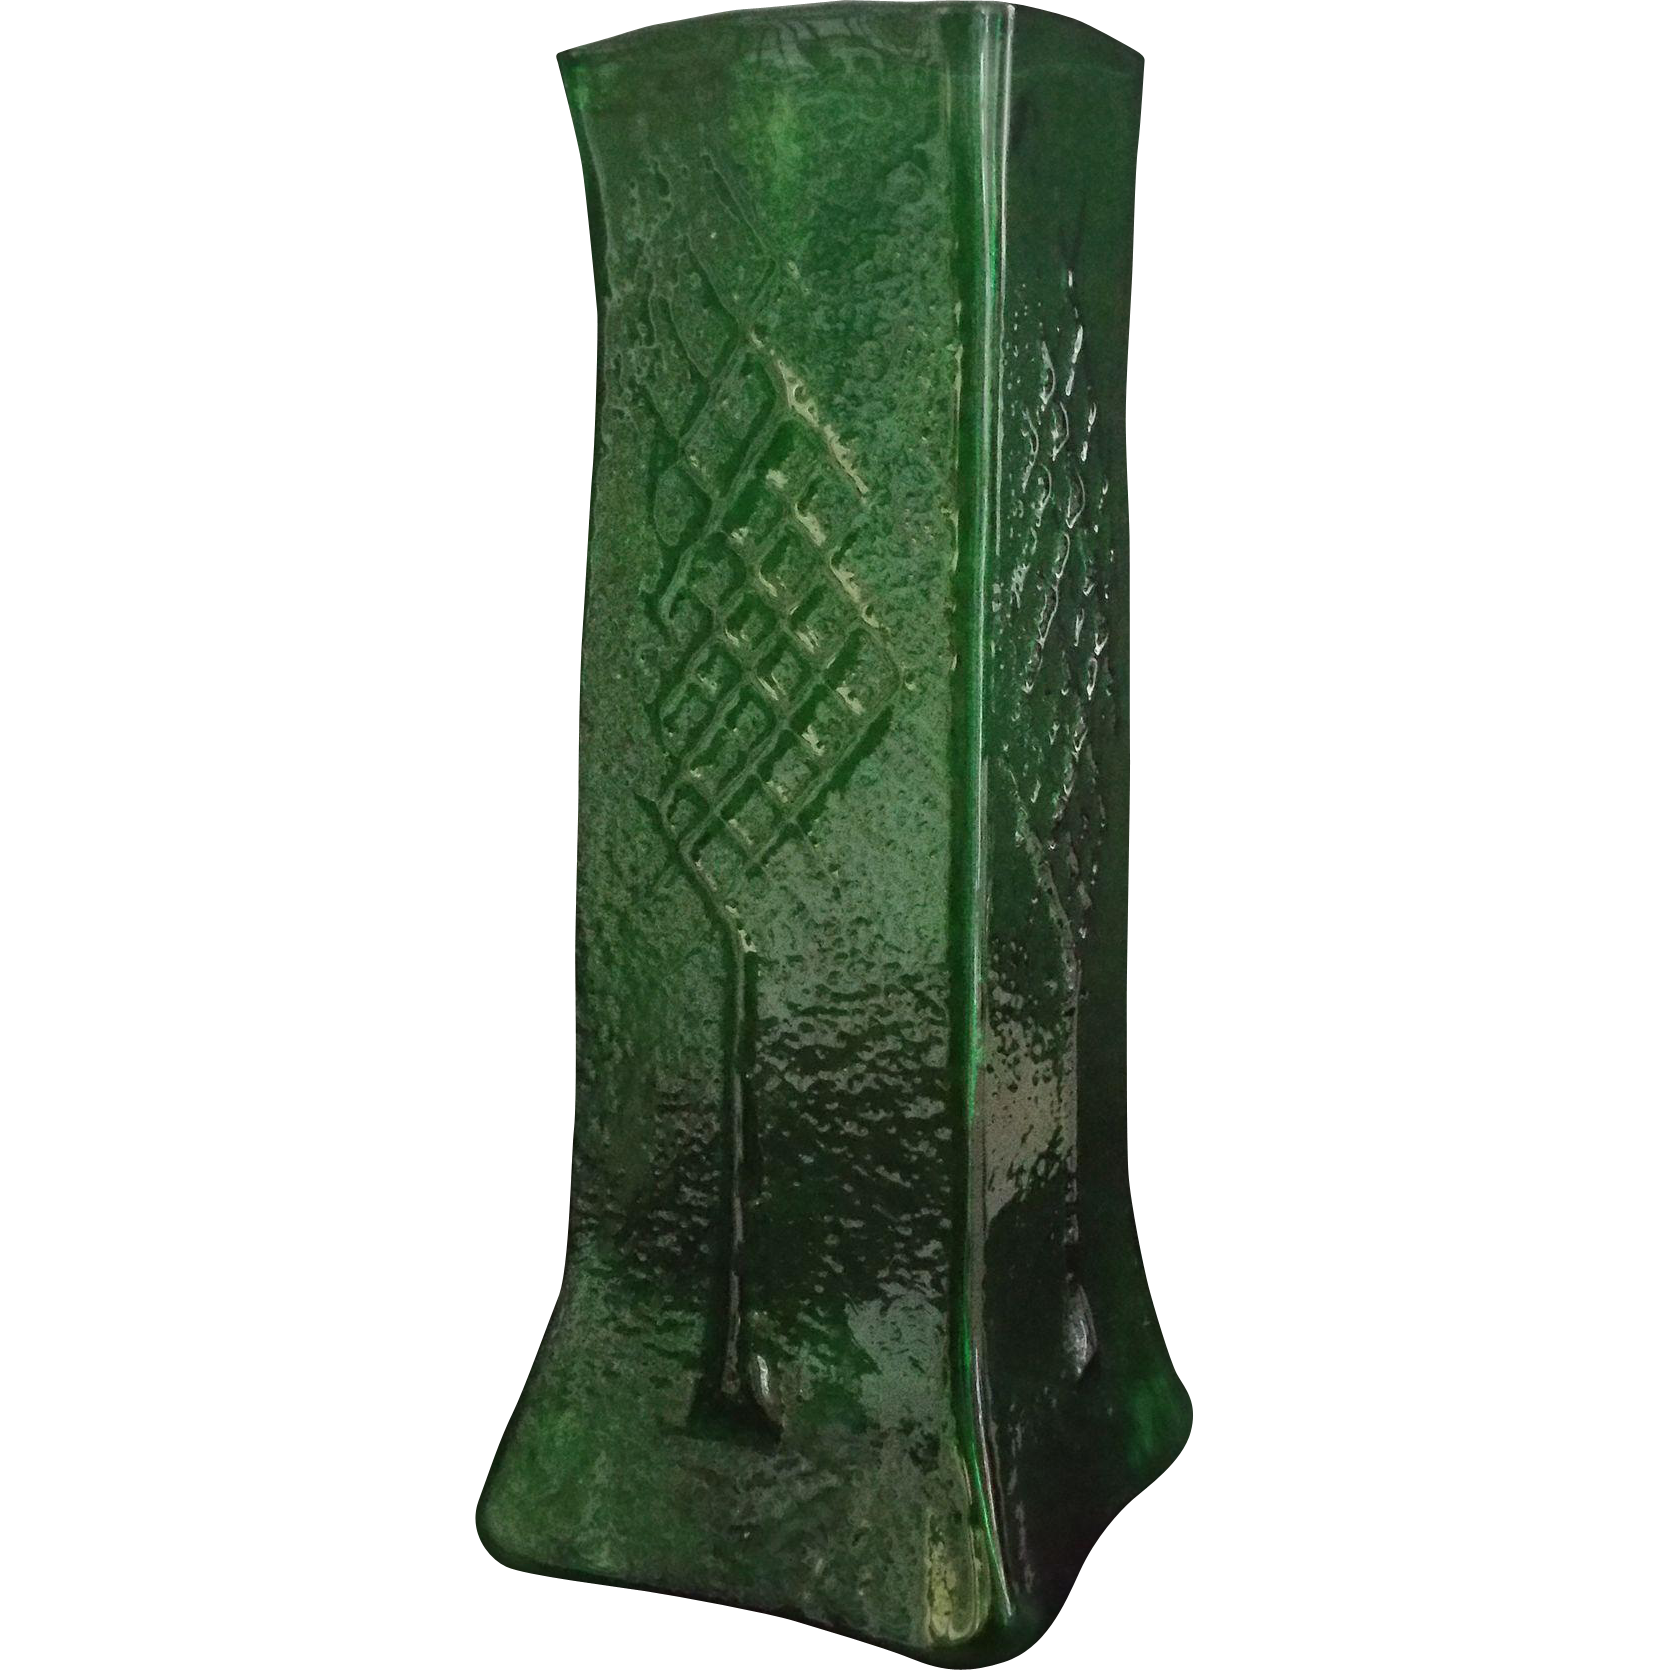 Magnificent Emerald Green Tall square Art Gl Funeral Vase with ... on rectangle container, rectangle design, rectangle quilt, rectangle mailbox, rectangle soap, rectangle cutting board, rectangle house, rectangle ikebana, rectangle tile, rectangle bird cage, rectangle green, rectangle pencil holder, rectangle basket, rectangle box, rectangle plate, rectangle tablecloths, rectangle umbrella, rectangle window, rectangle sign, rectangle pillow,